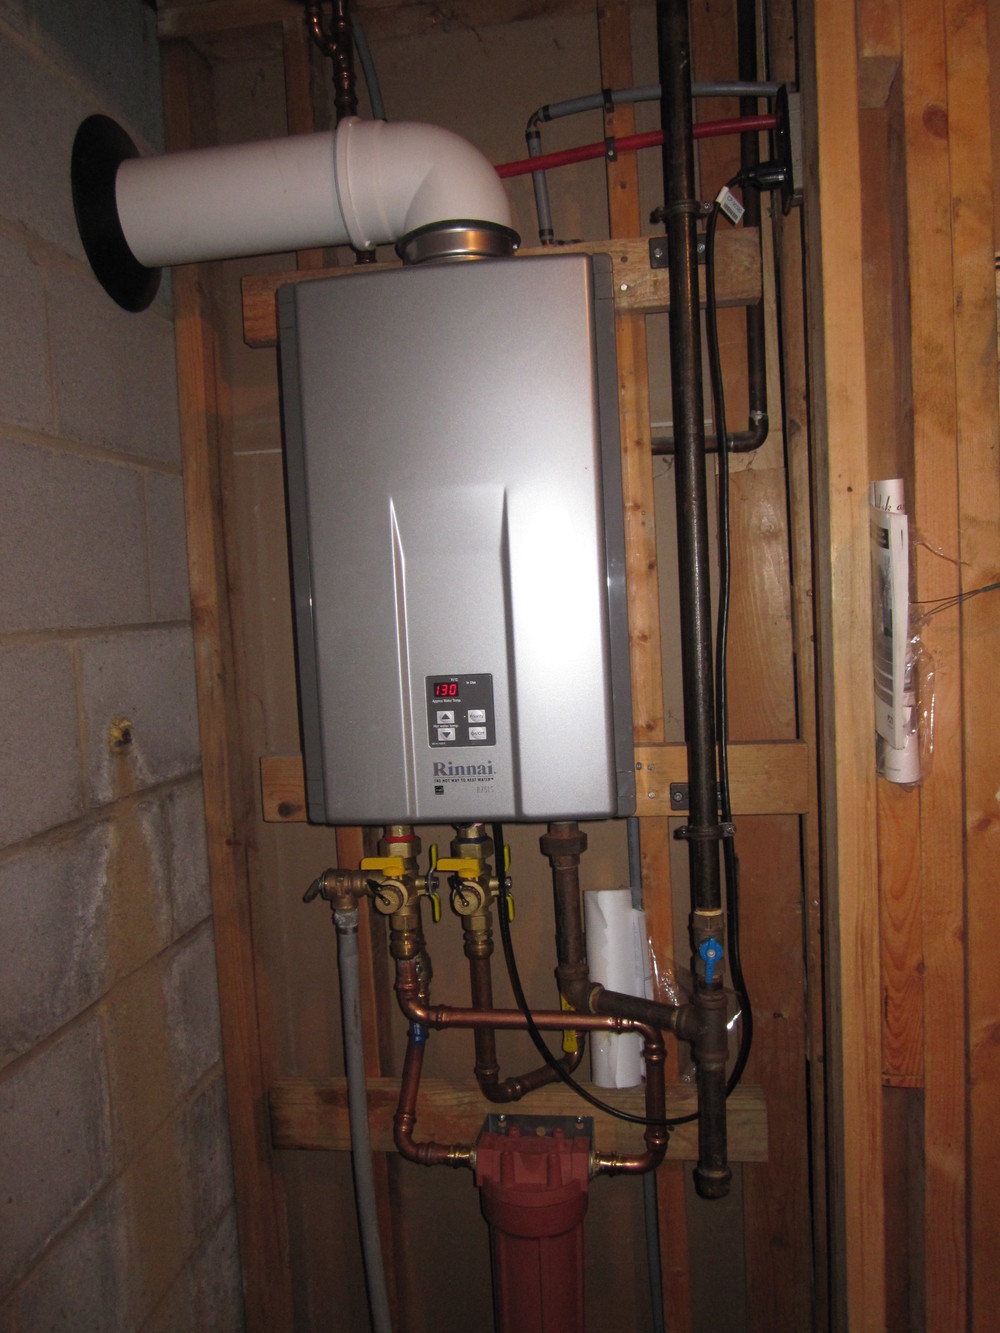 Our plumbers installed this Rinnai tankless water heater in a customer's home.